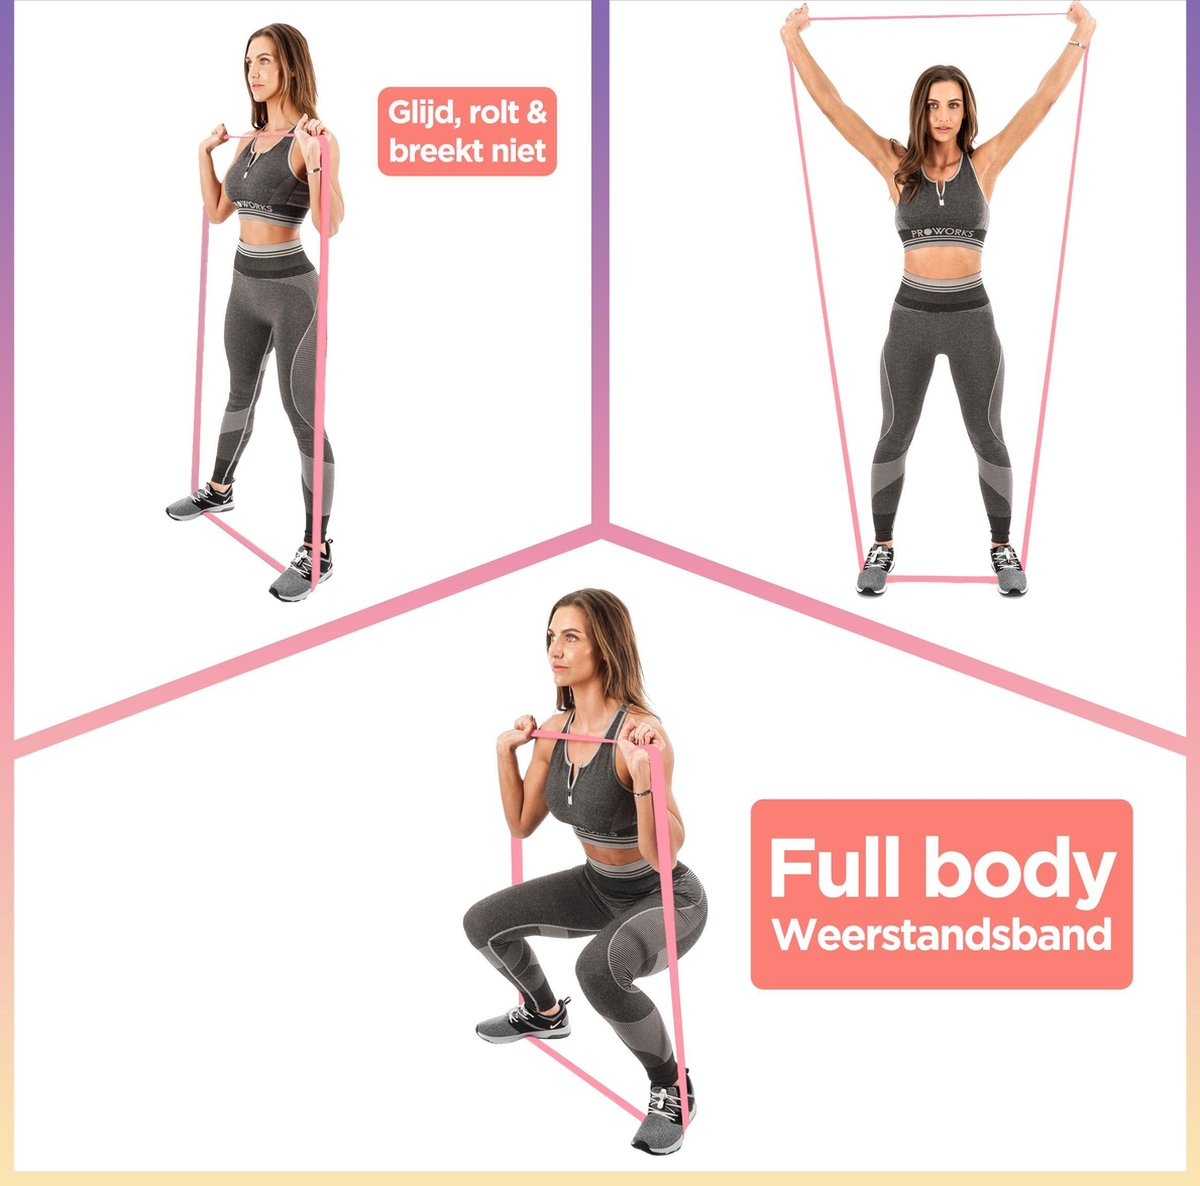 long Booty Band Hip Circle Loop Resistance Band Workout Exercise for Legs  Thigh Glute Butt Squat Bands Non slip Design